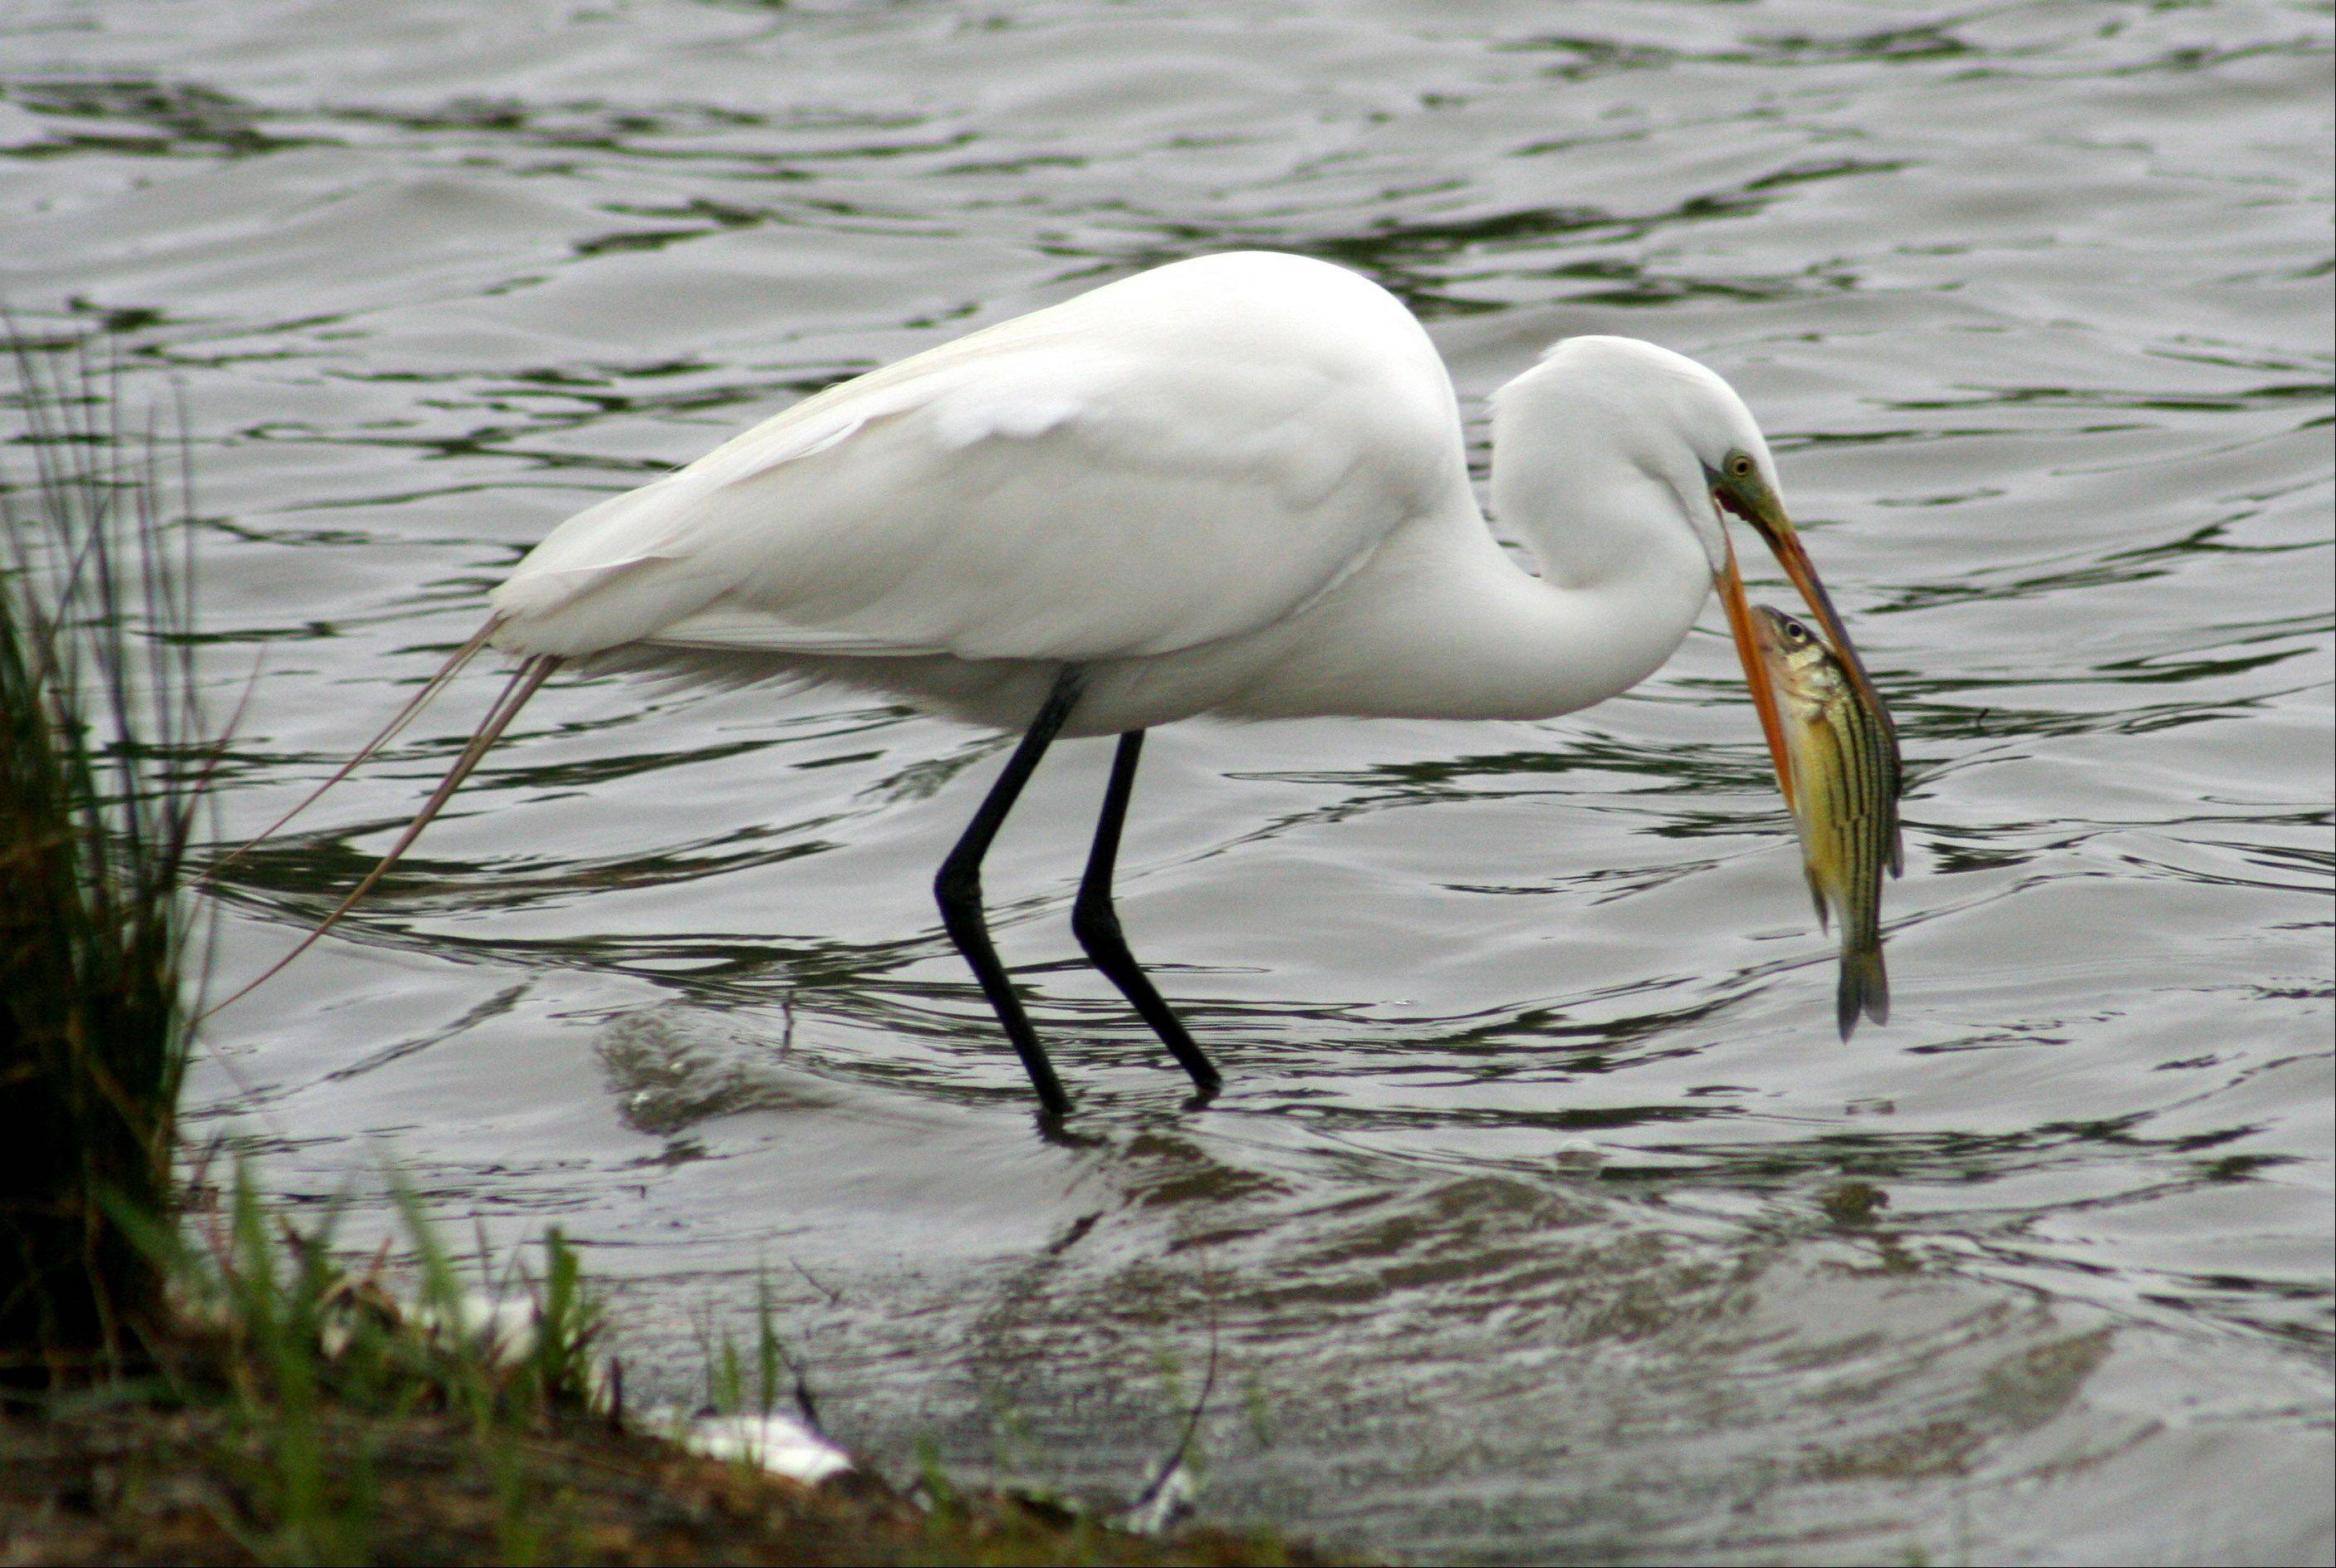 I took this photo of a Great Egret at Armstrong Park in Carol Stream, IL. I have noticed that the park has attracted new wildlife this spring, including herons, egrets, ducks, geese, and other interesting birds. I like the way it looks like the eyes of the egret are aligned with the eyes of the fish. I used a telephoto lens and stood about ten feet away.